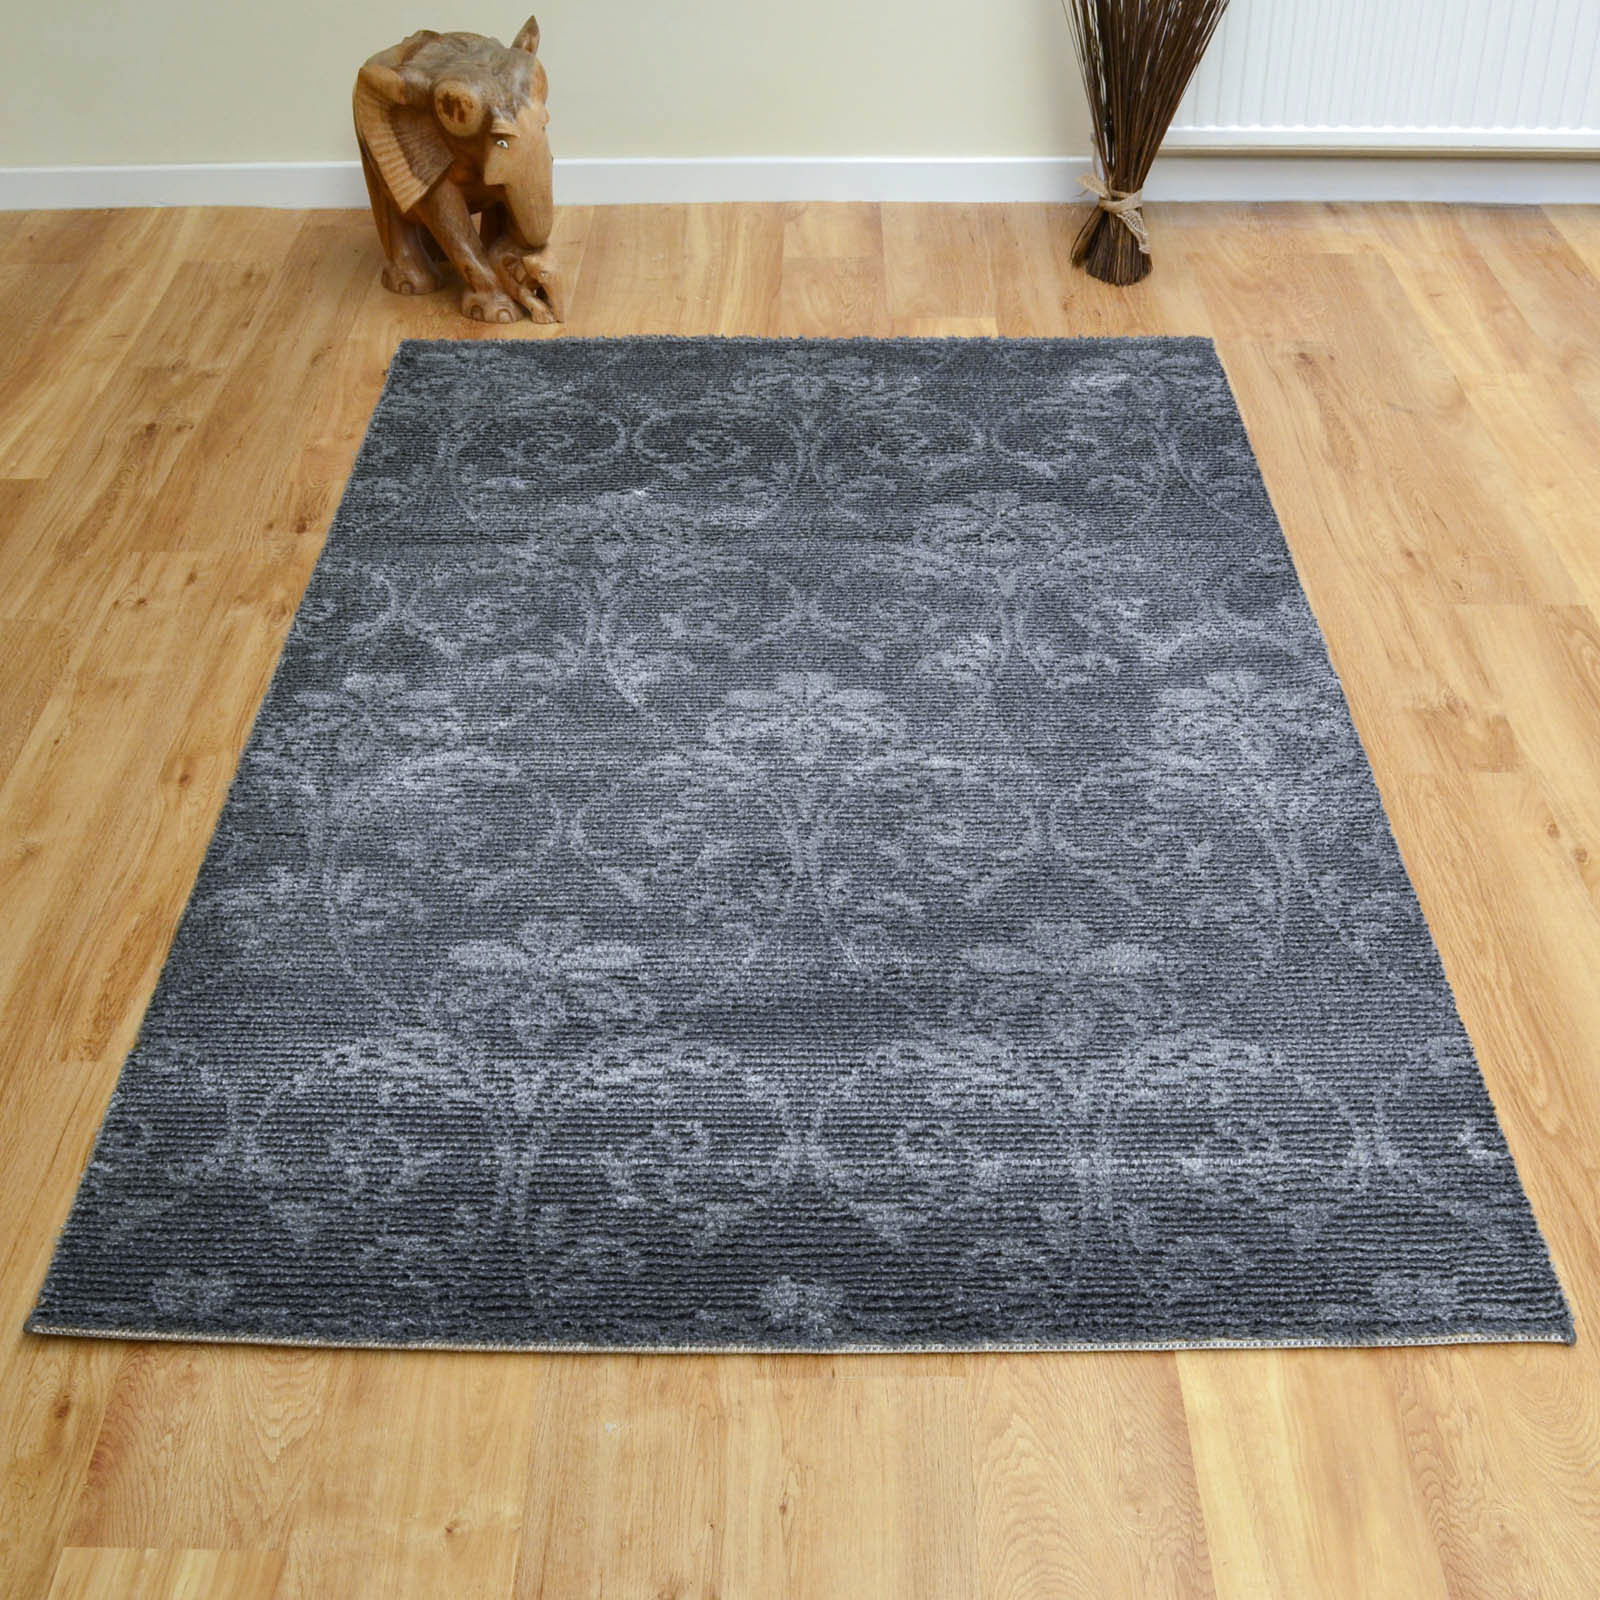 Chelsea Rugs 2208 942 in Grey